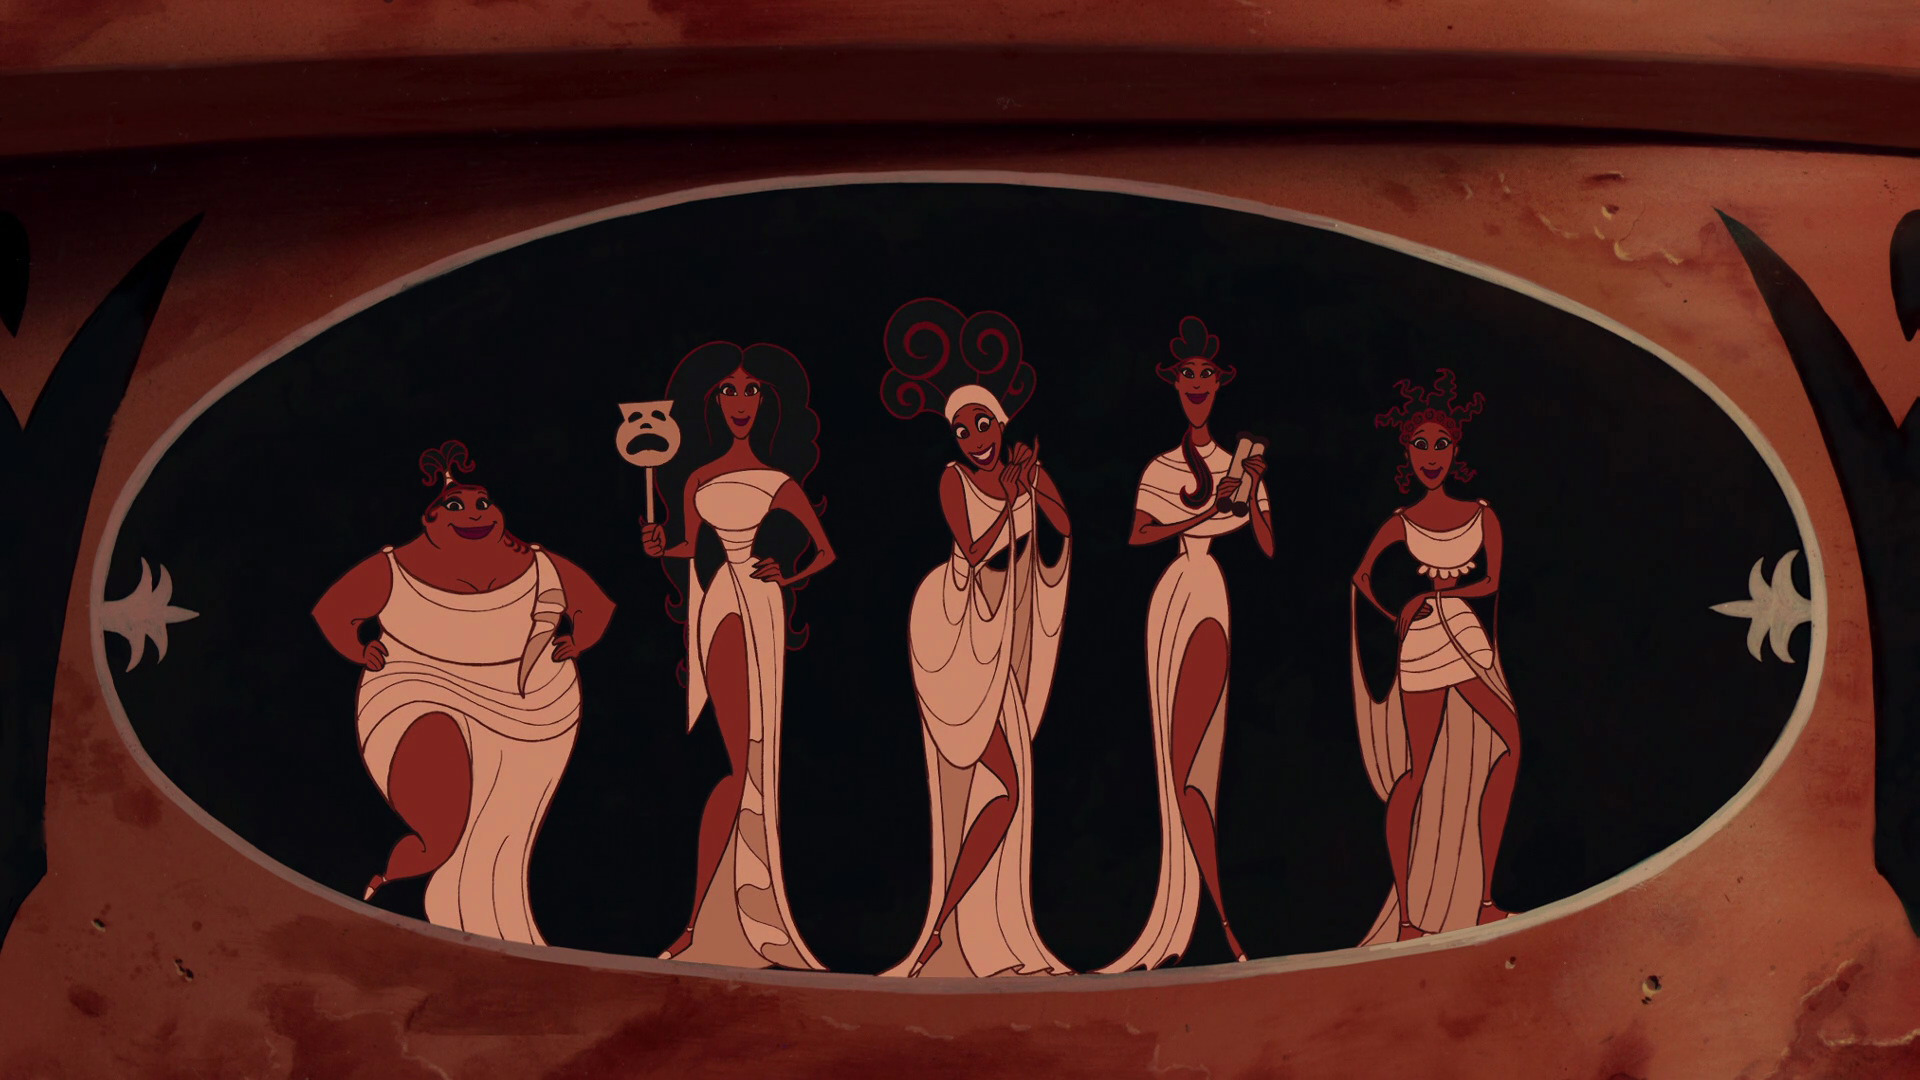 Muses side characters